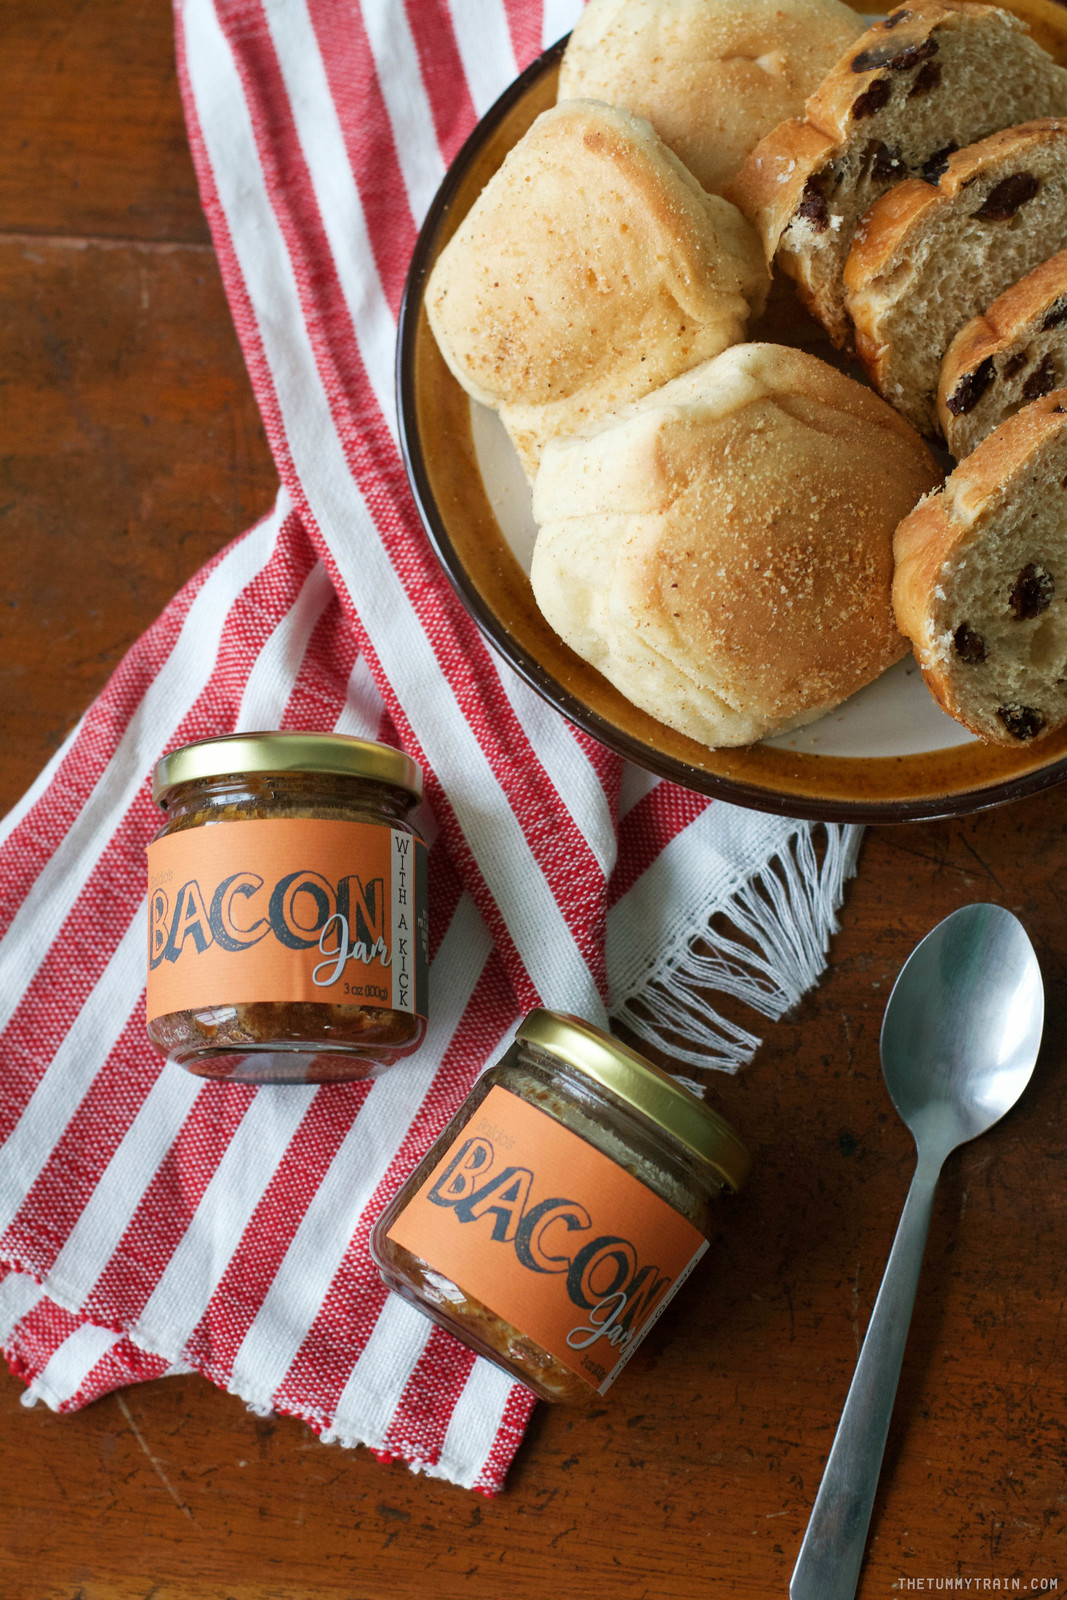 31142096016 5eb63a4046 h - Eat or Retreat: Baldo's Bacon Jam in Original & With A Kick